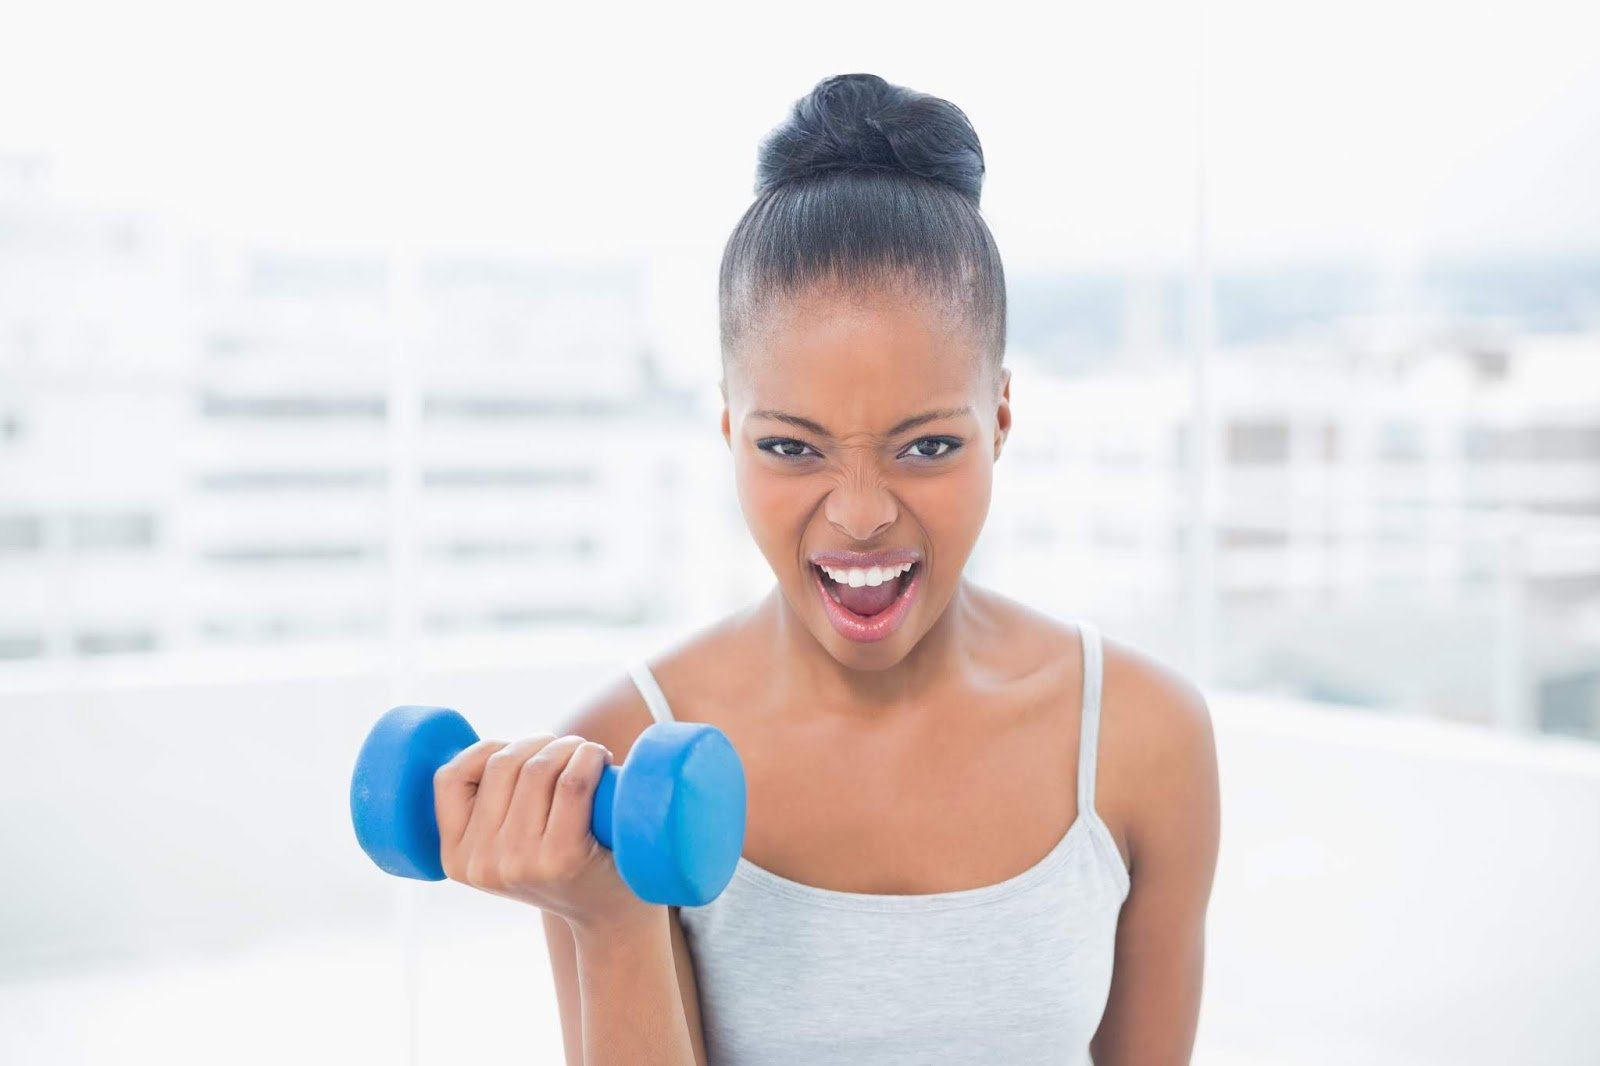 Is Fitness a Goal This Summer? Here's 7 Myths That Keep You From Reaching Your Ideal Body.